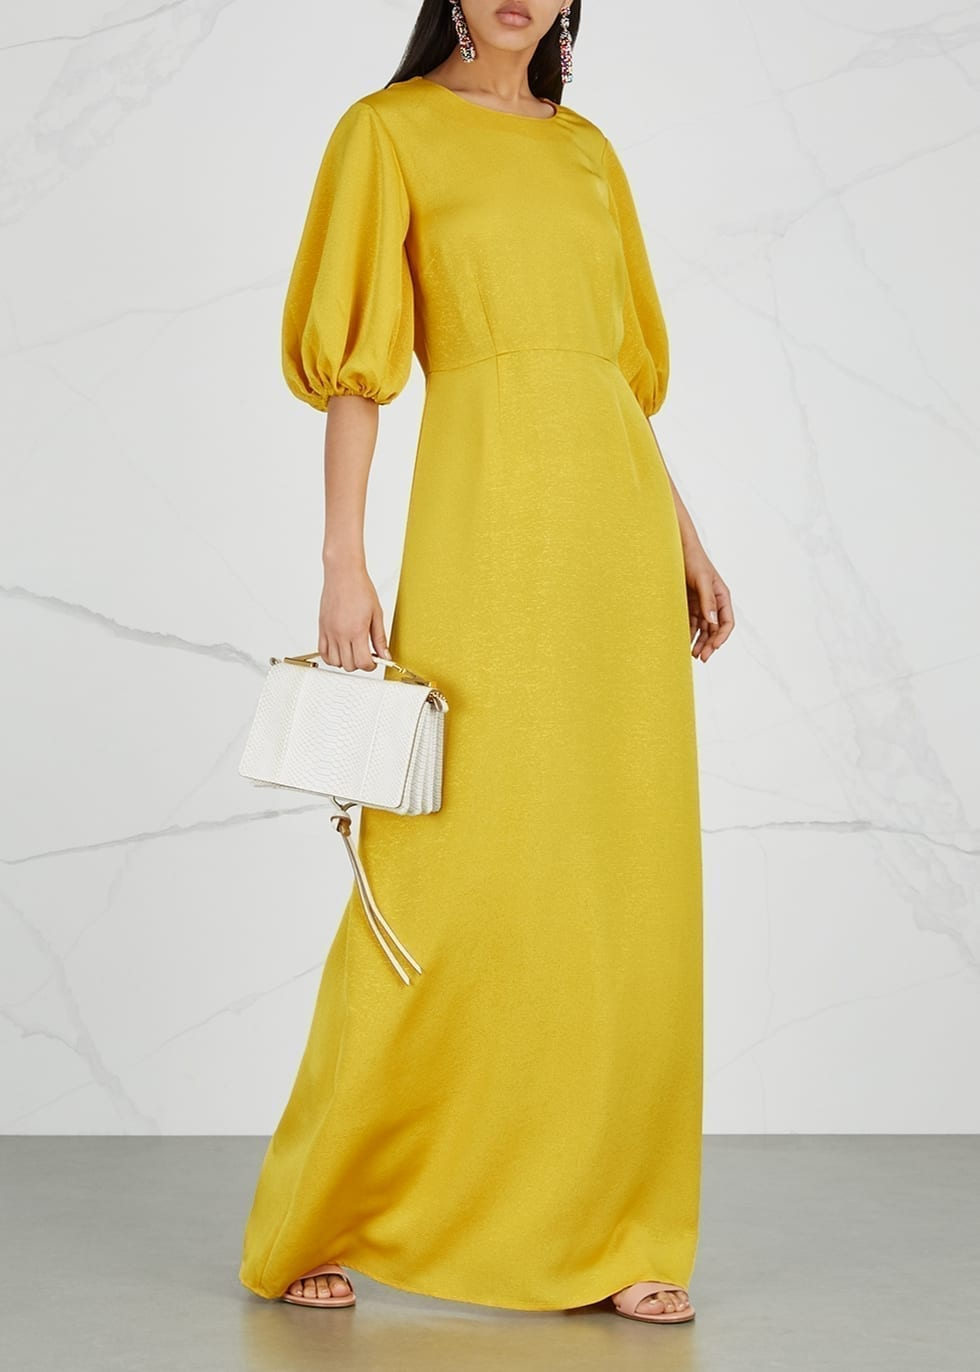 STINE GOYA Delia Ribbed Maxi Yellow Dress